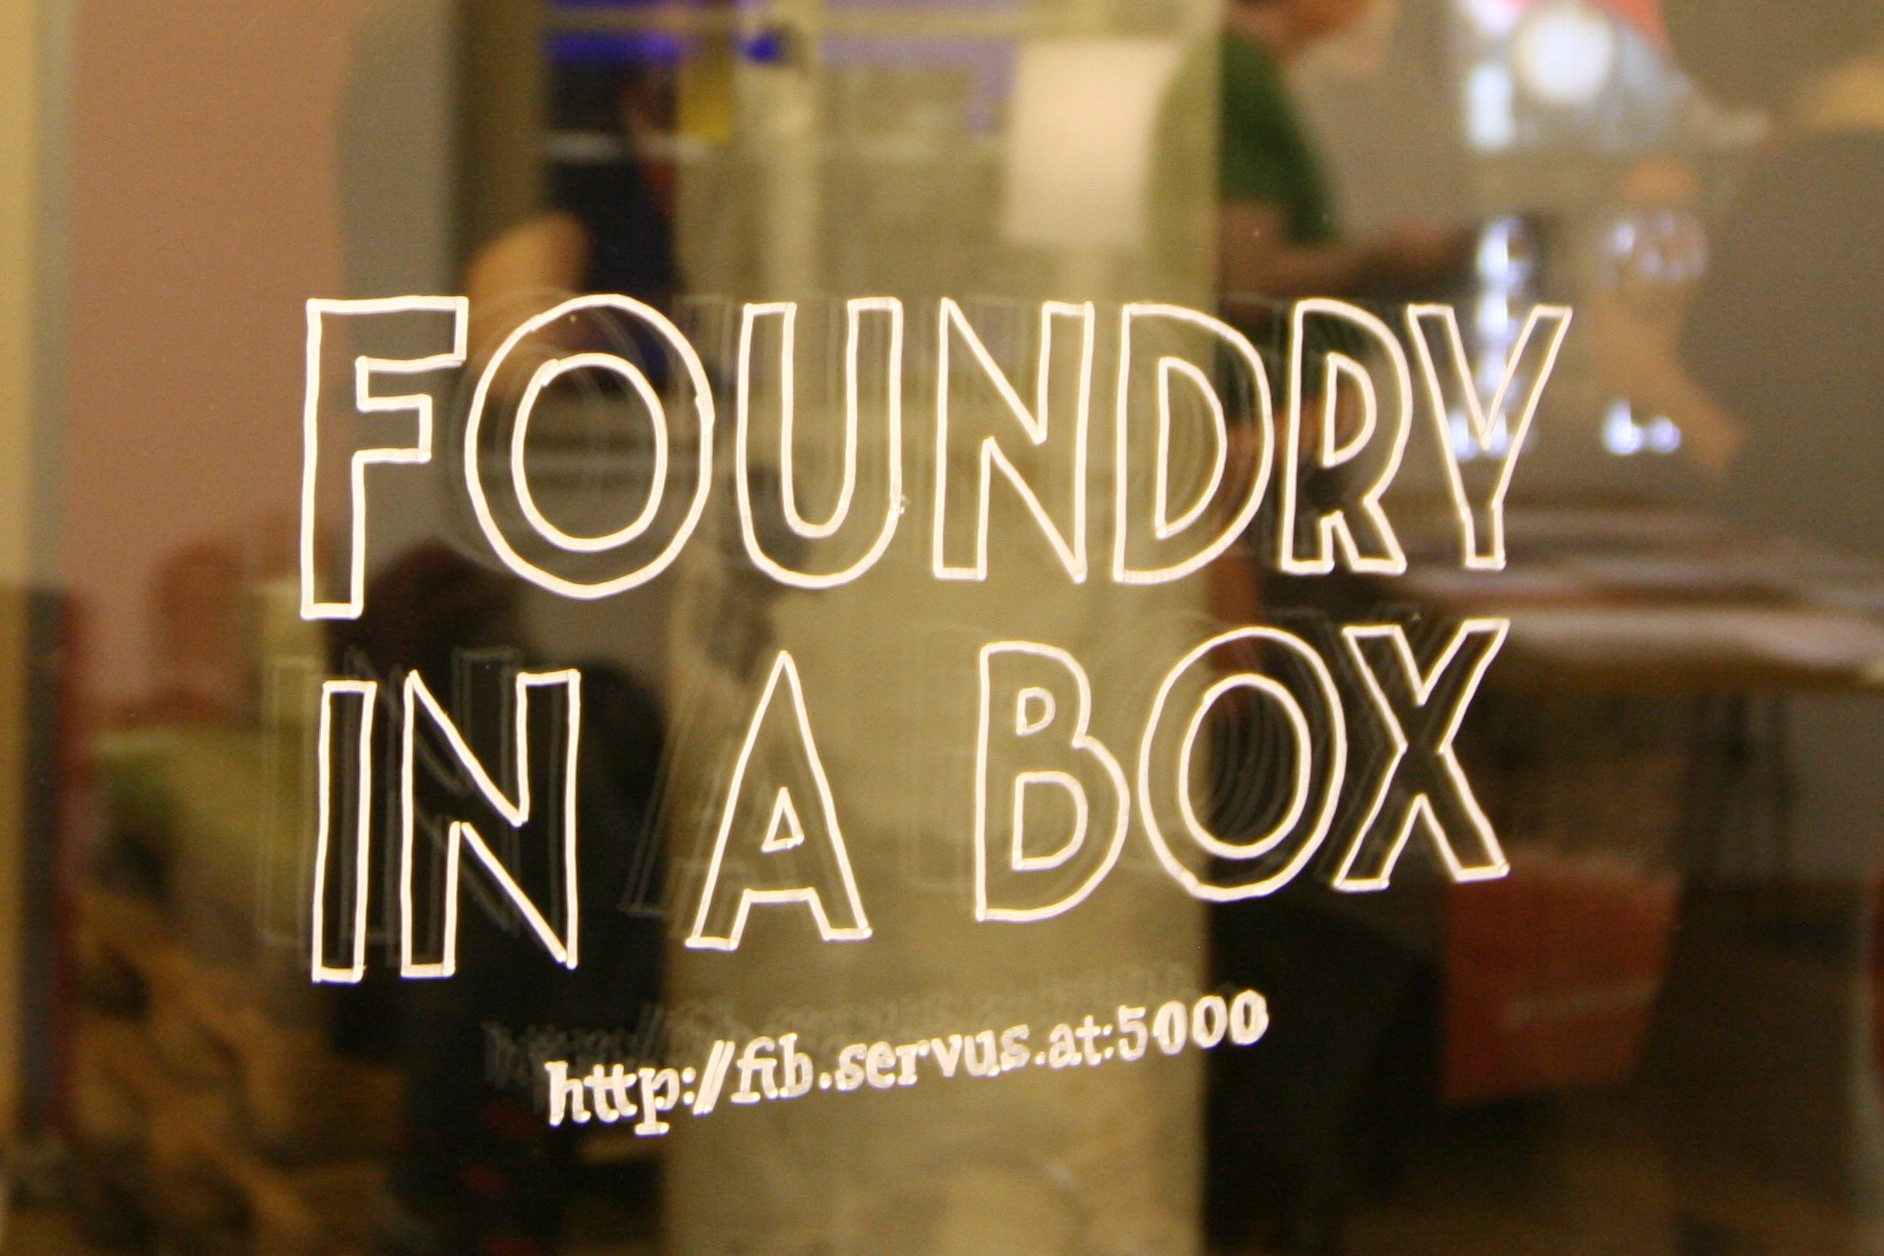 Foundry in a box